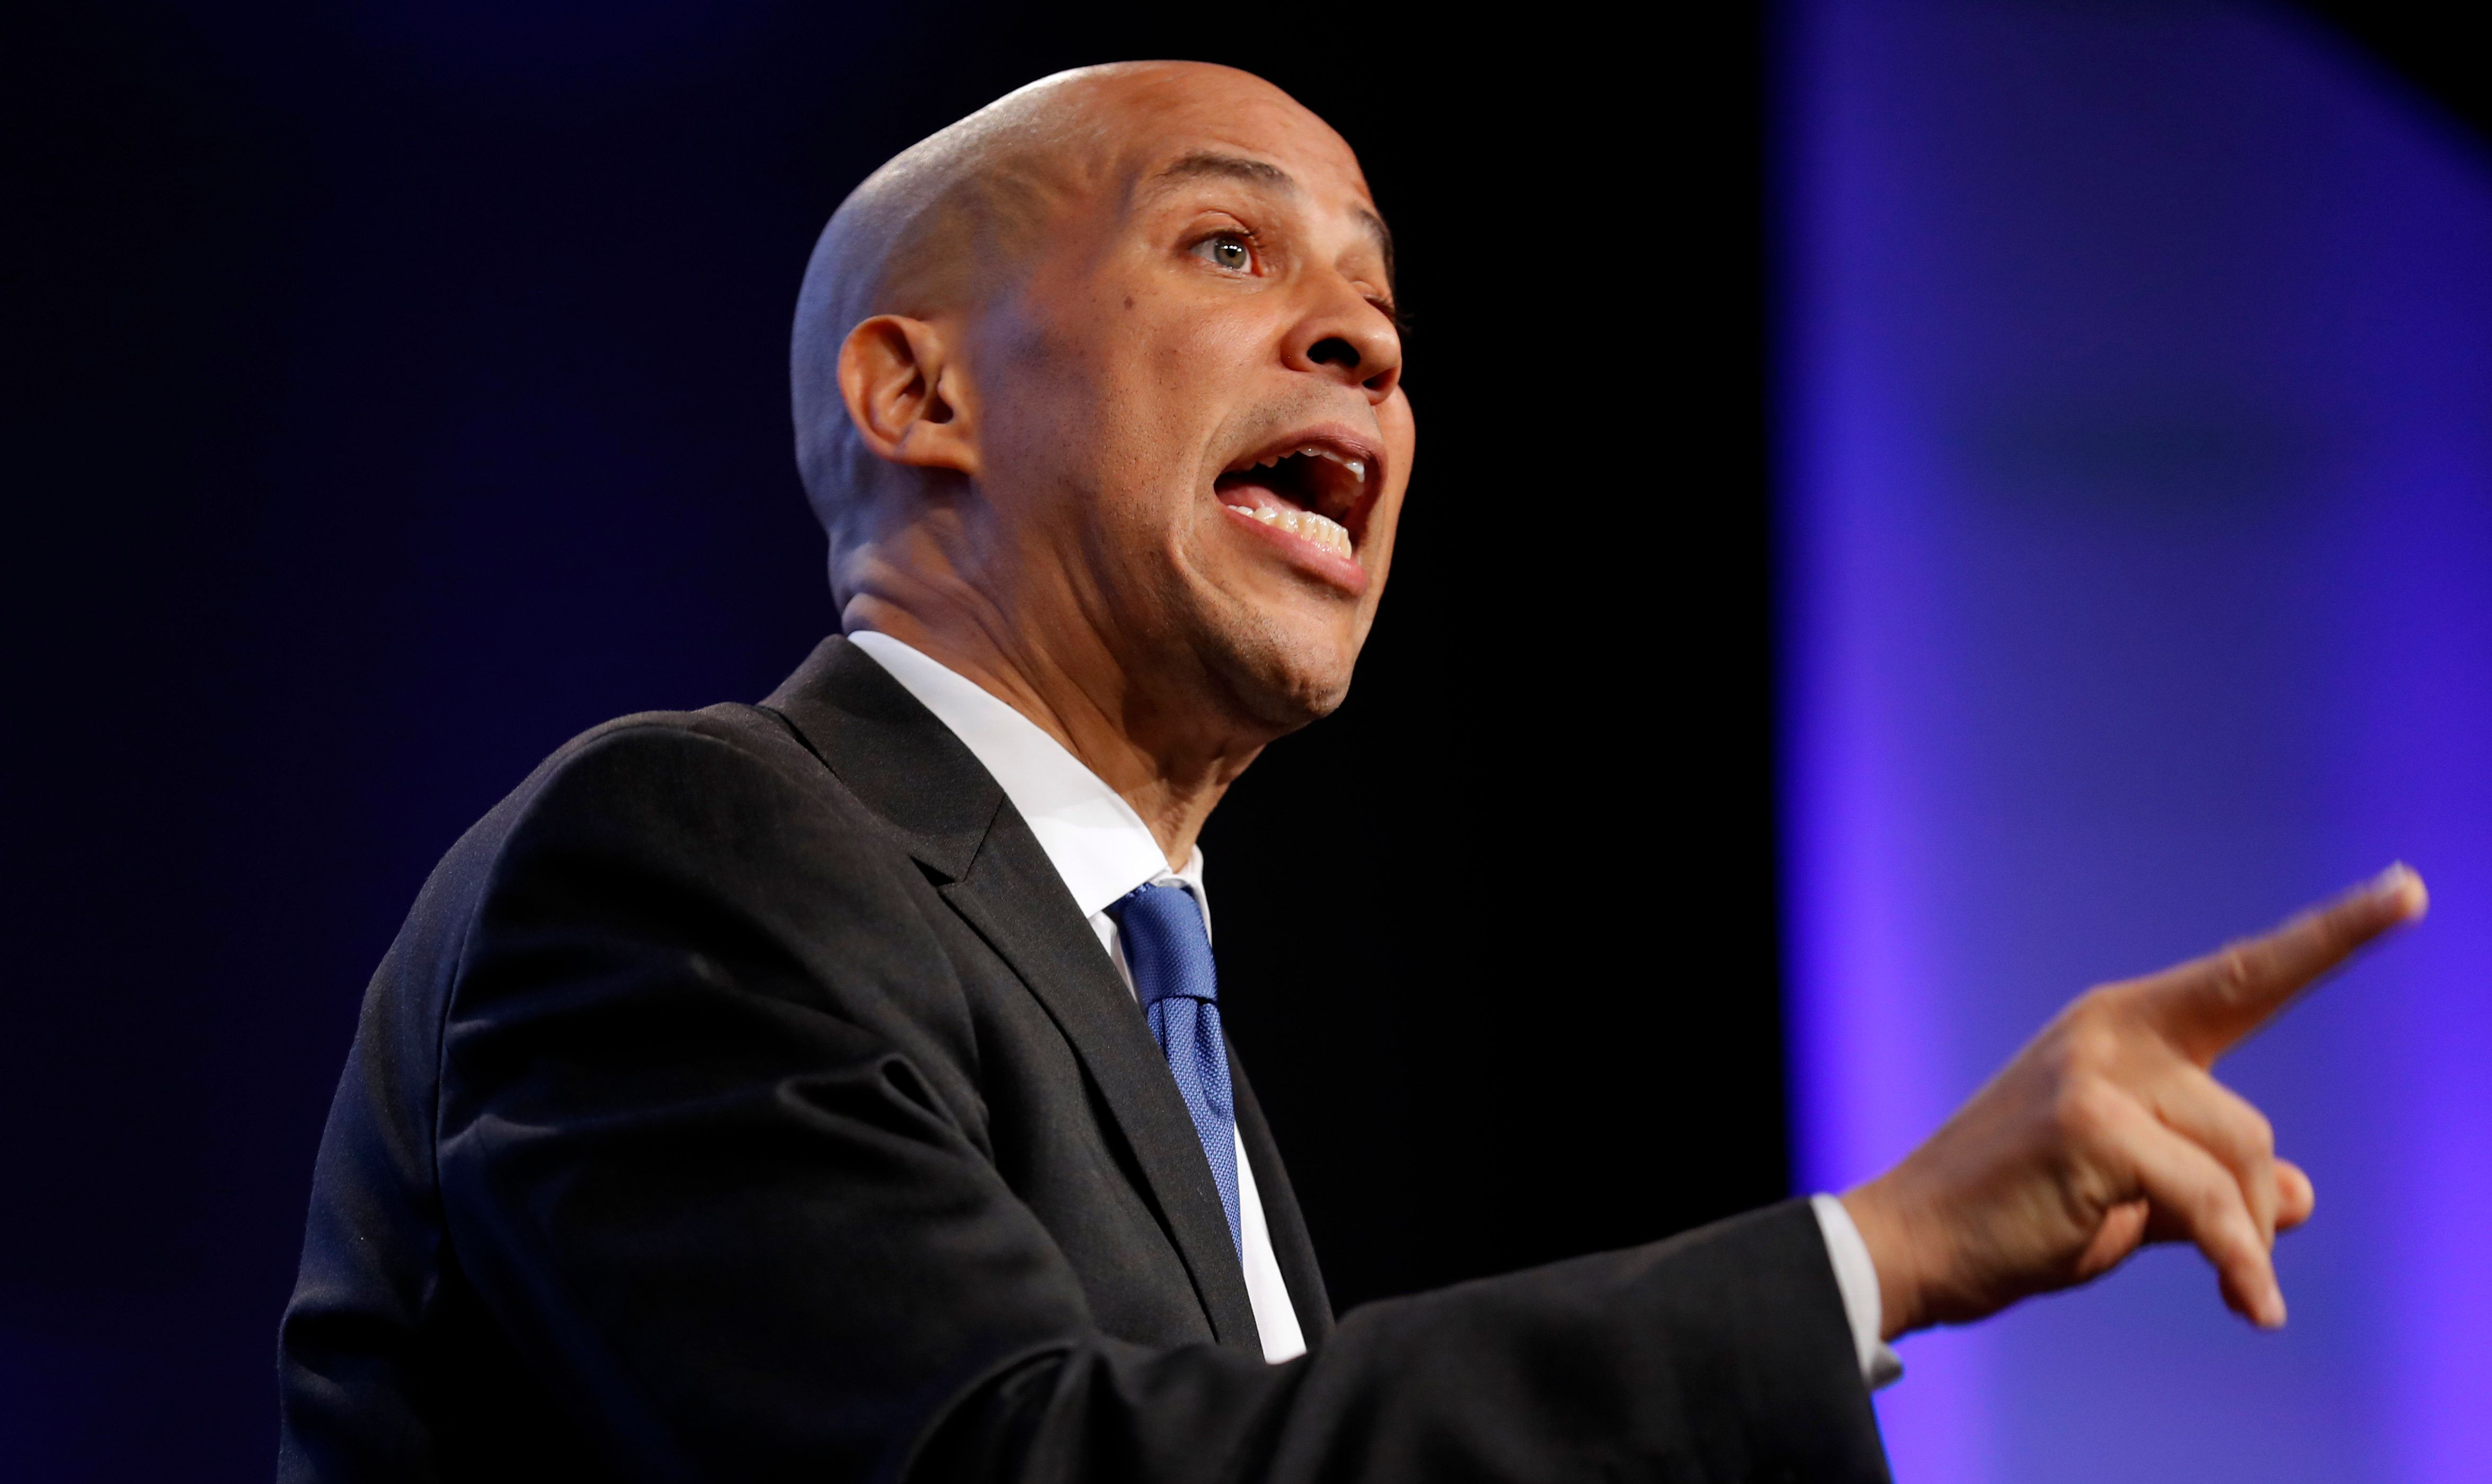 WASHINGTON ― Sen. Cory Booker (D-N.J.) pressed for long-overdue reforms to the